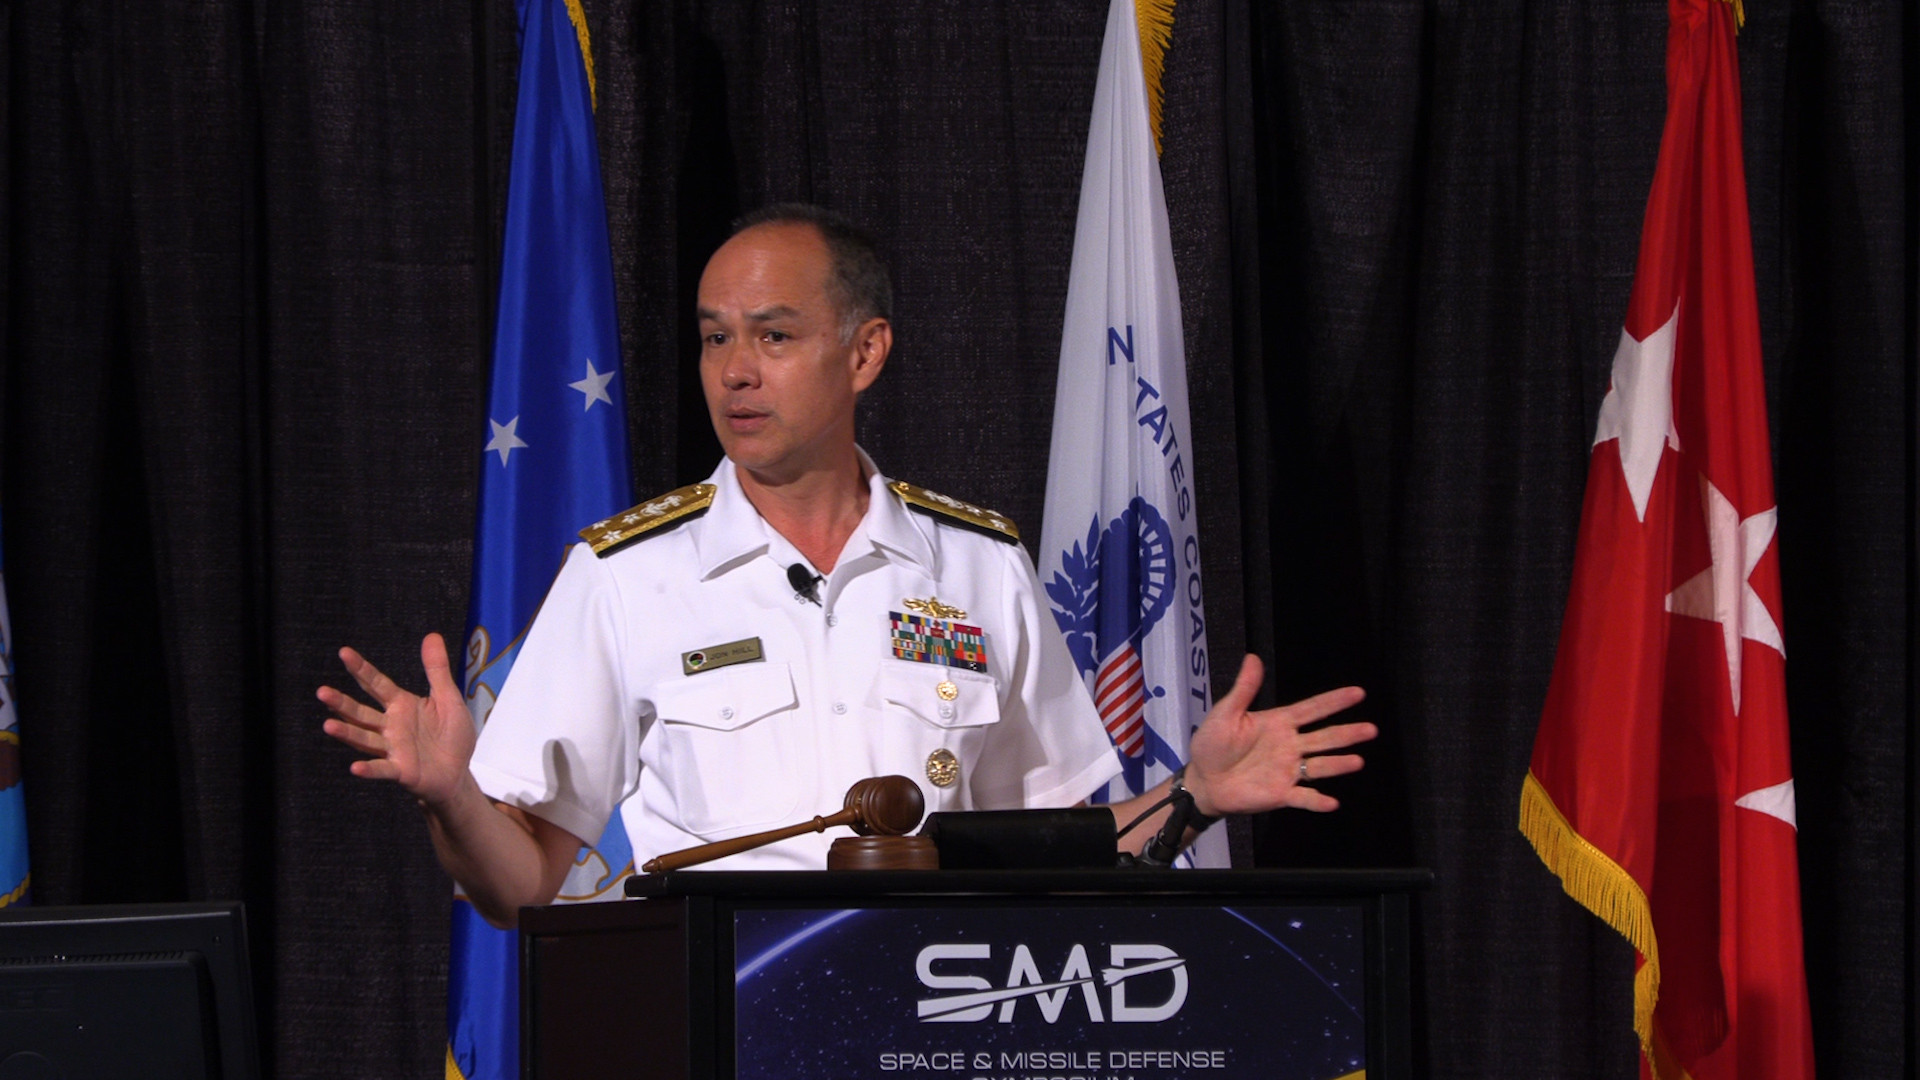 Vice Adm. Jon Hill, director of the Missile Defense Agency, speaks at the Space and Missile Defense Symposium in Huntsville, Ala., on Aug. 8, 2019. (Jeff Martin/Staff)